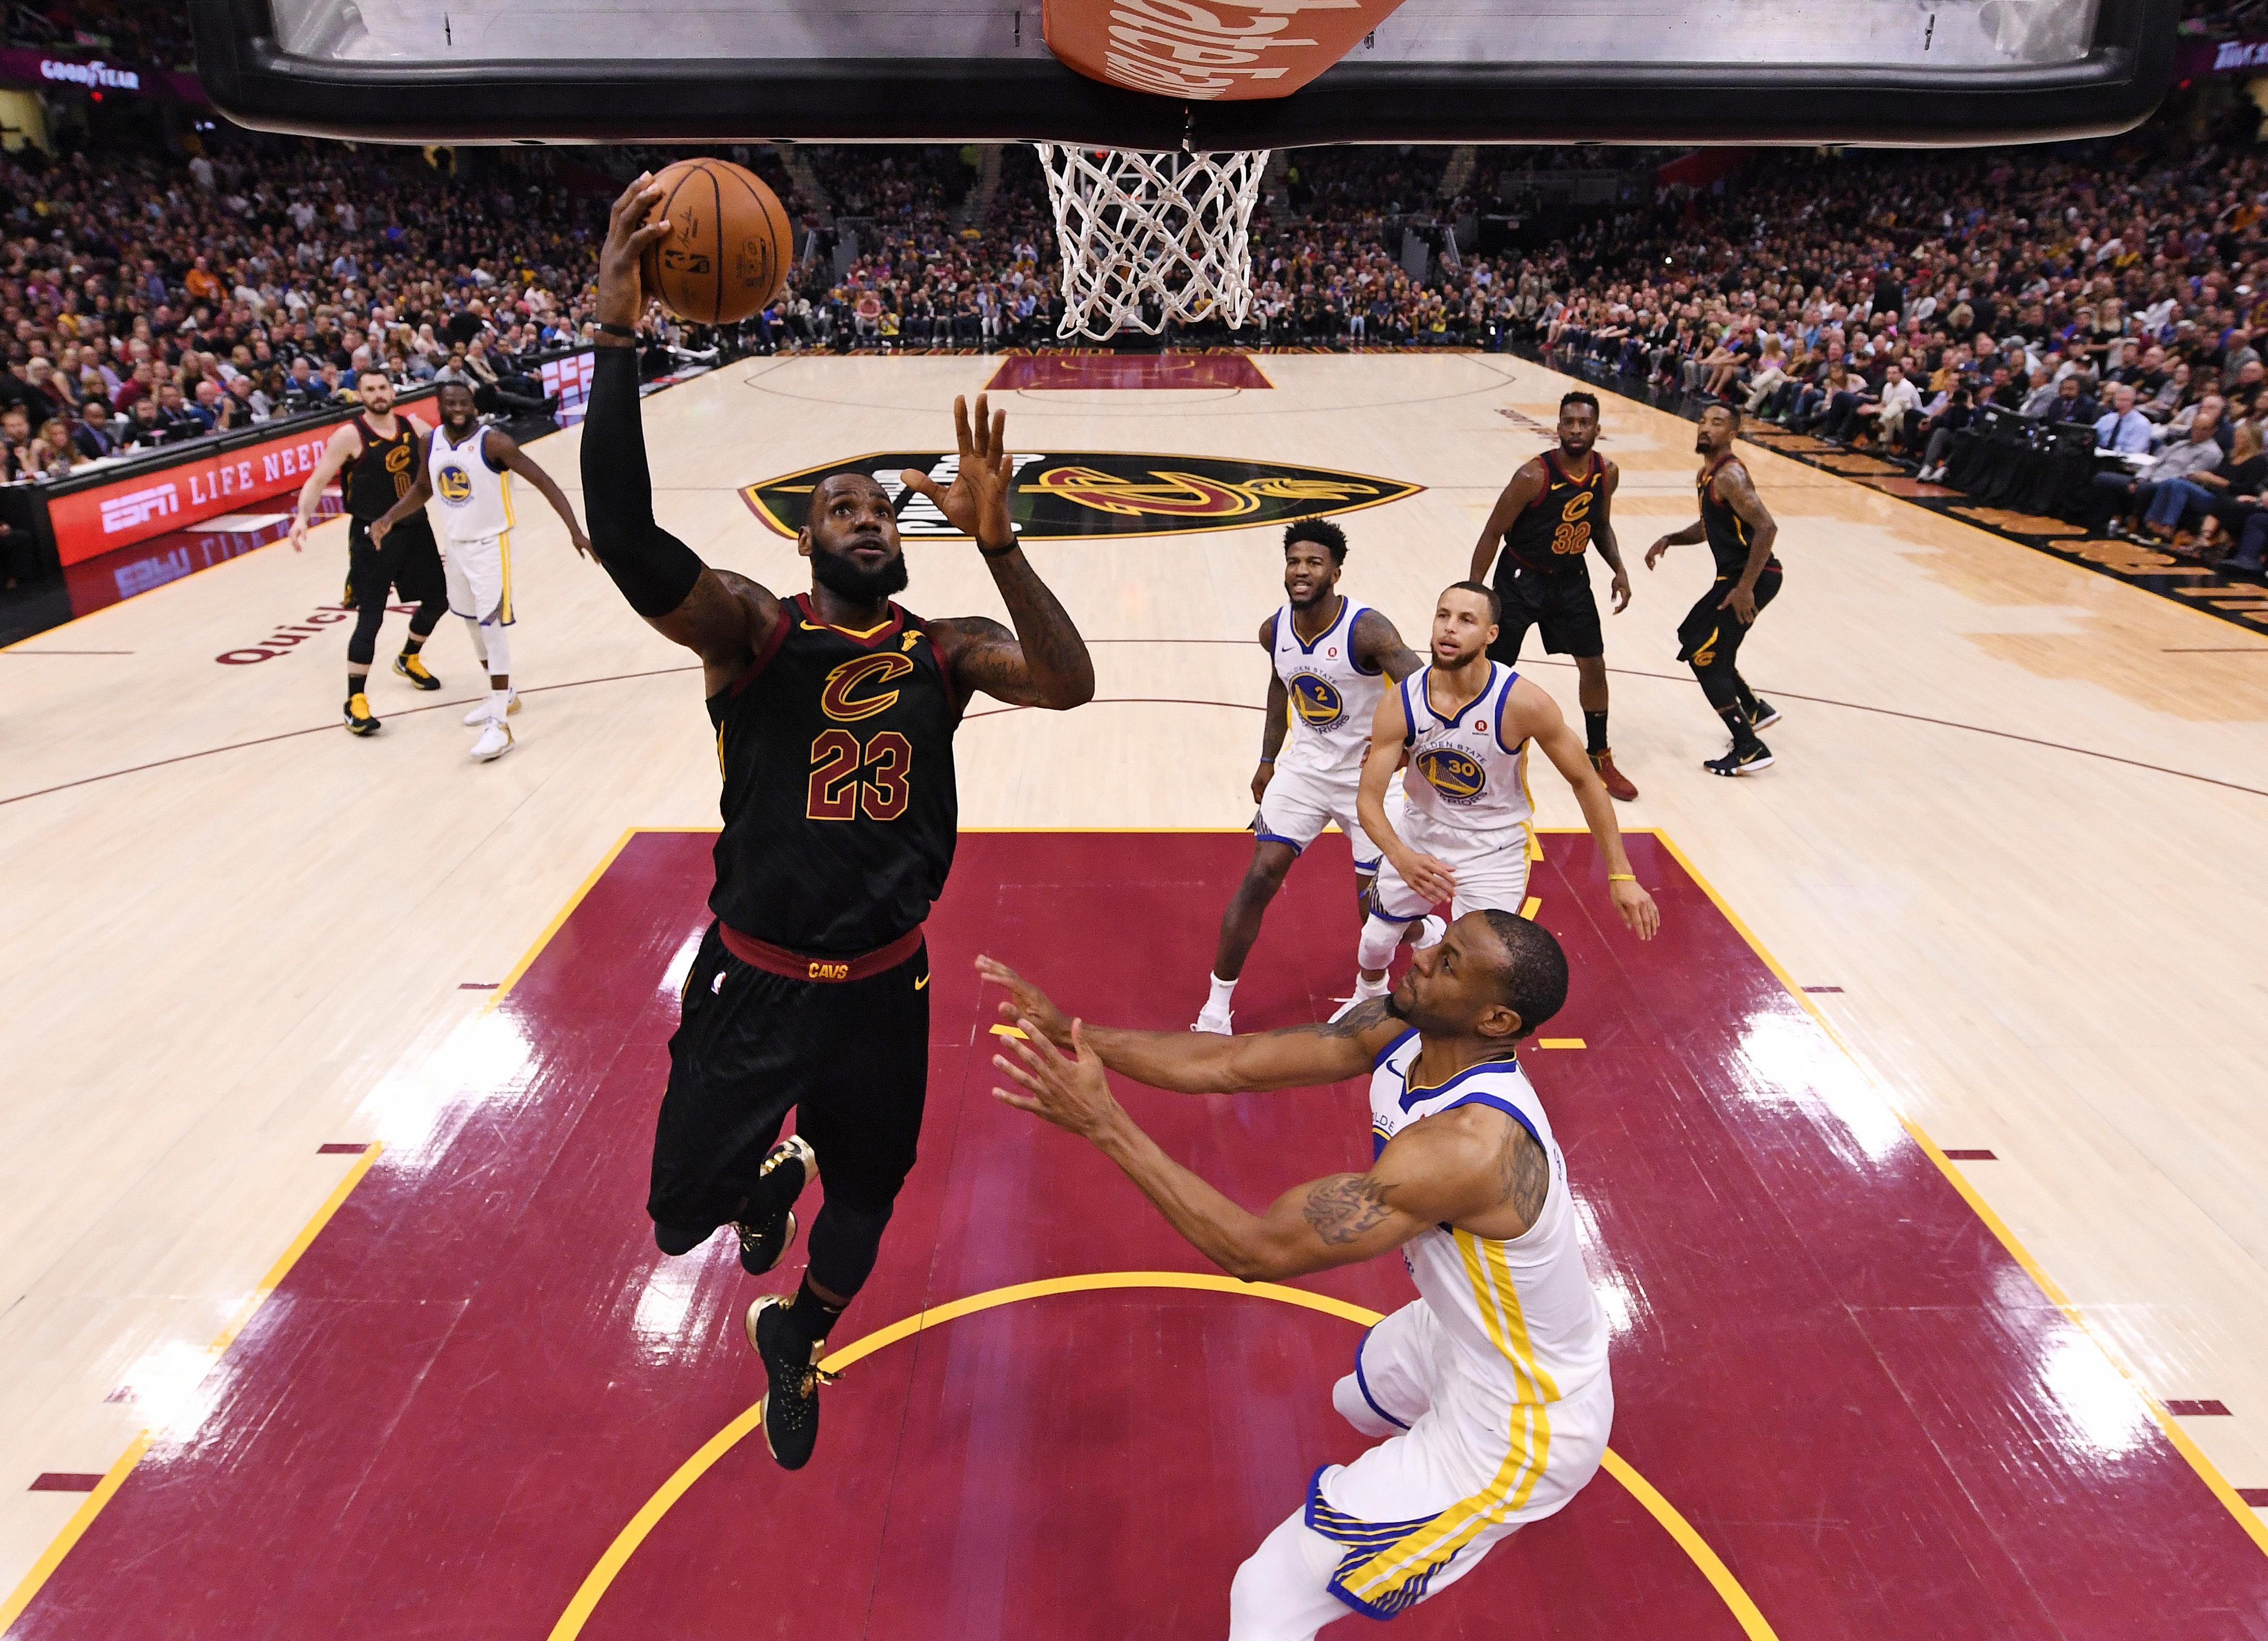 Cleveland Cavaliers' LeBron James shoots during the first half of Game 4 of basketball's NBA Finals against the Golden State Warriors, Friday, June 8, 2018, in Cleveland. (Gregory Shamus/Pool Photo via AP)